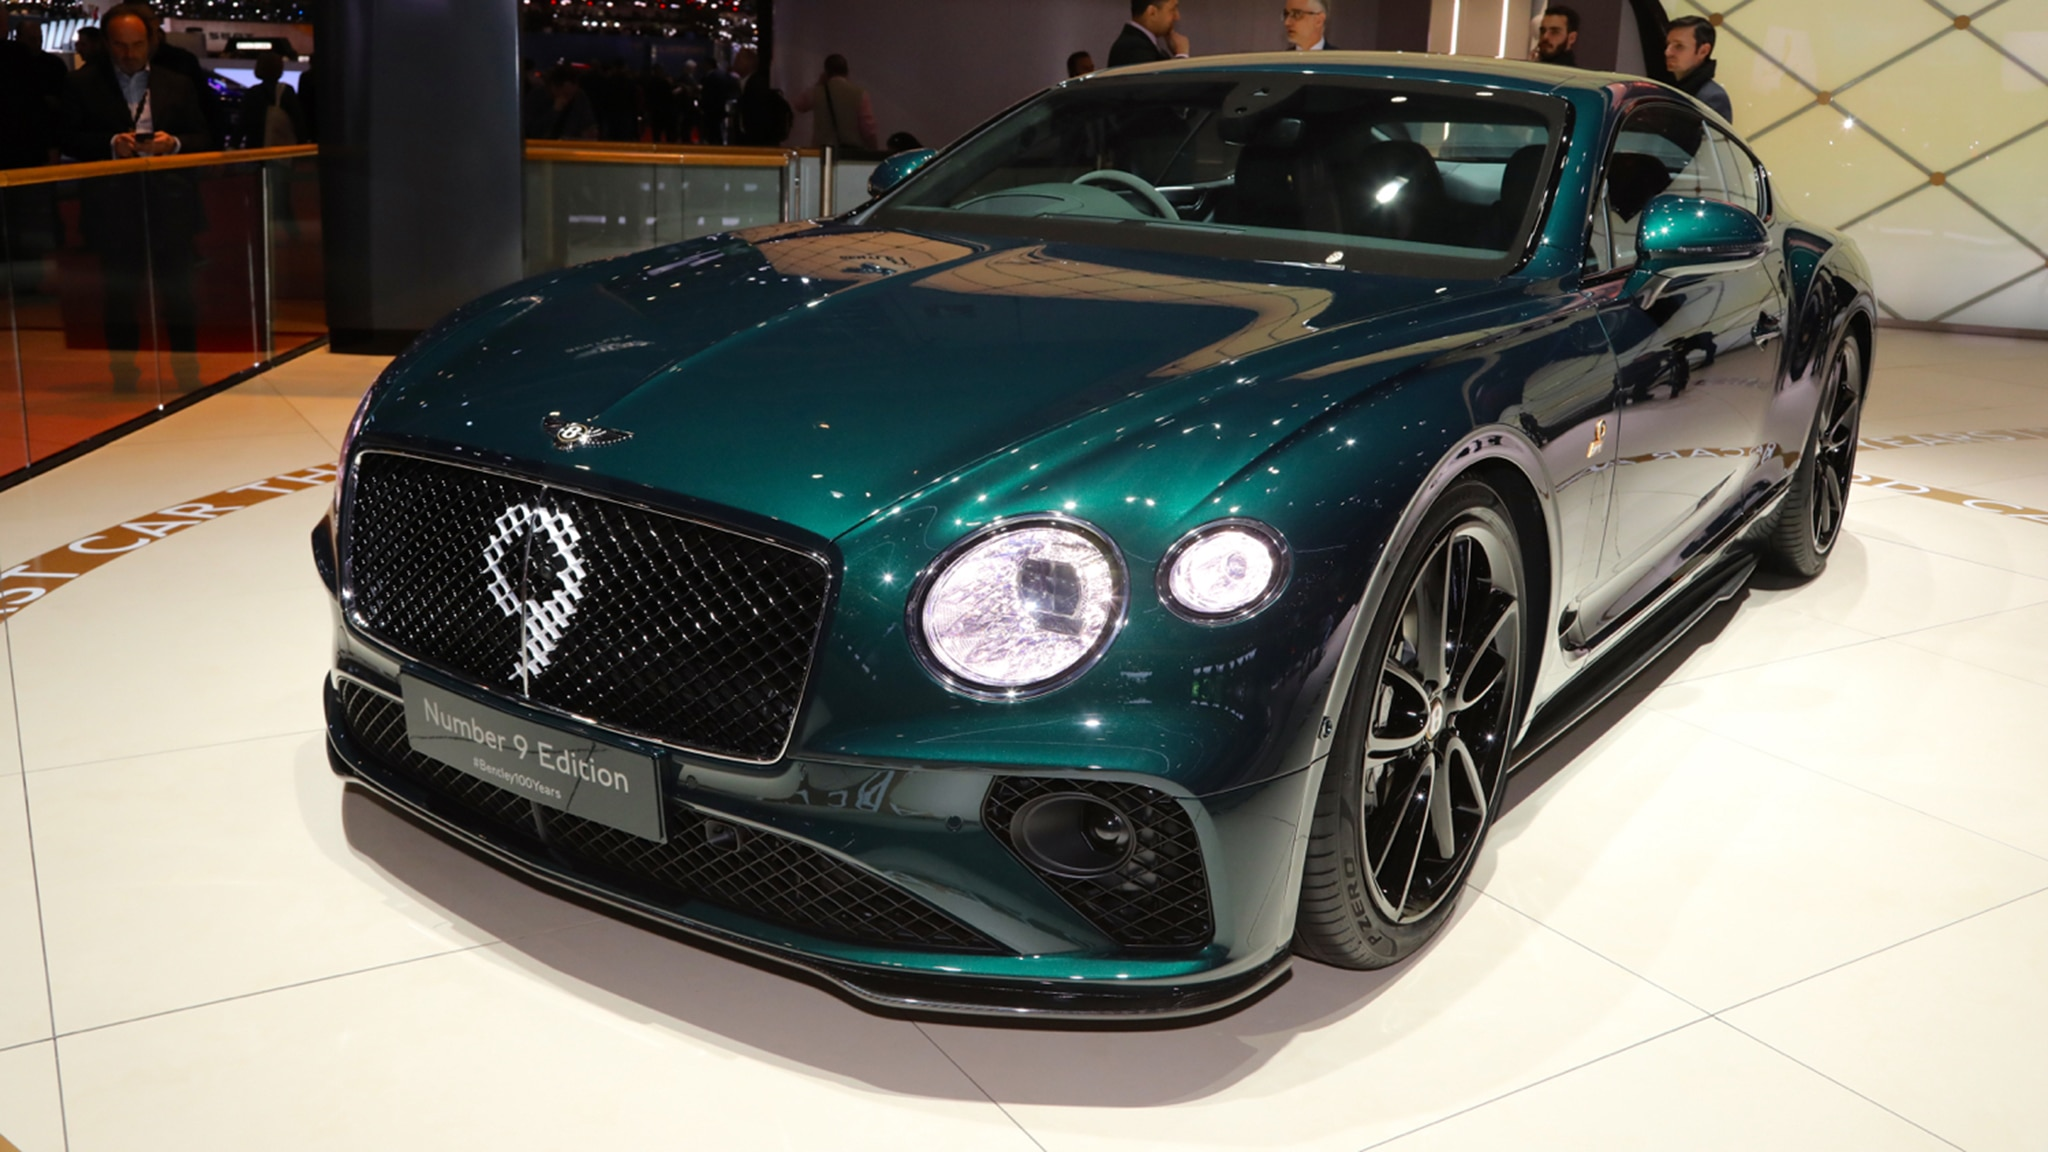 Bentley Continental GT Number 9 Edition Celebrates the Brand's Centenary